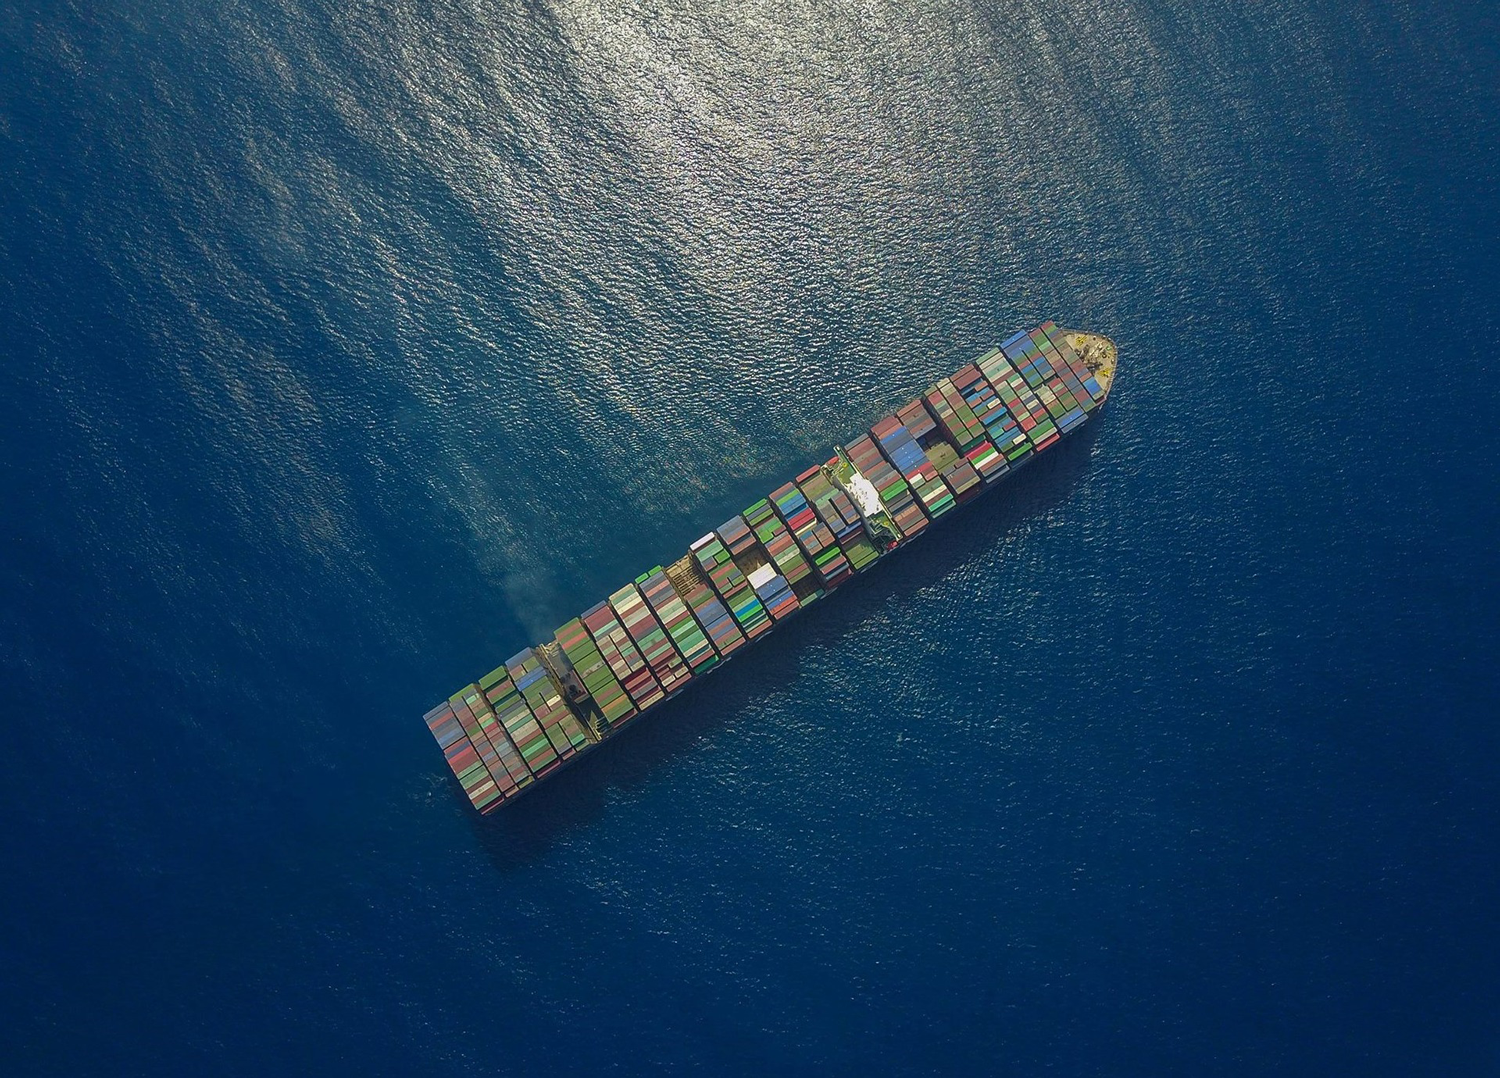 aerial-view-ocean-shipping-container-alexander-unsplash.png